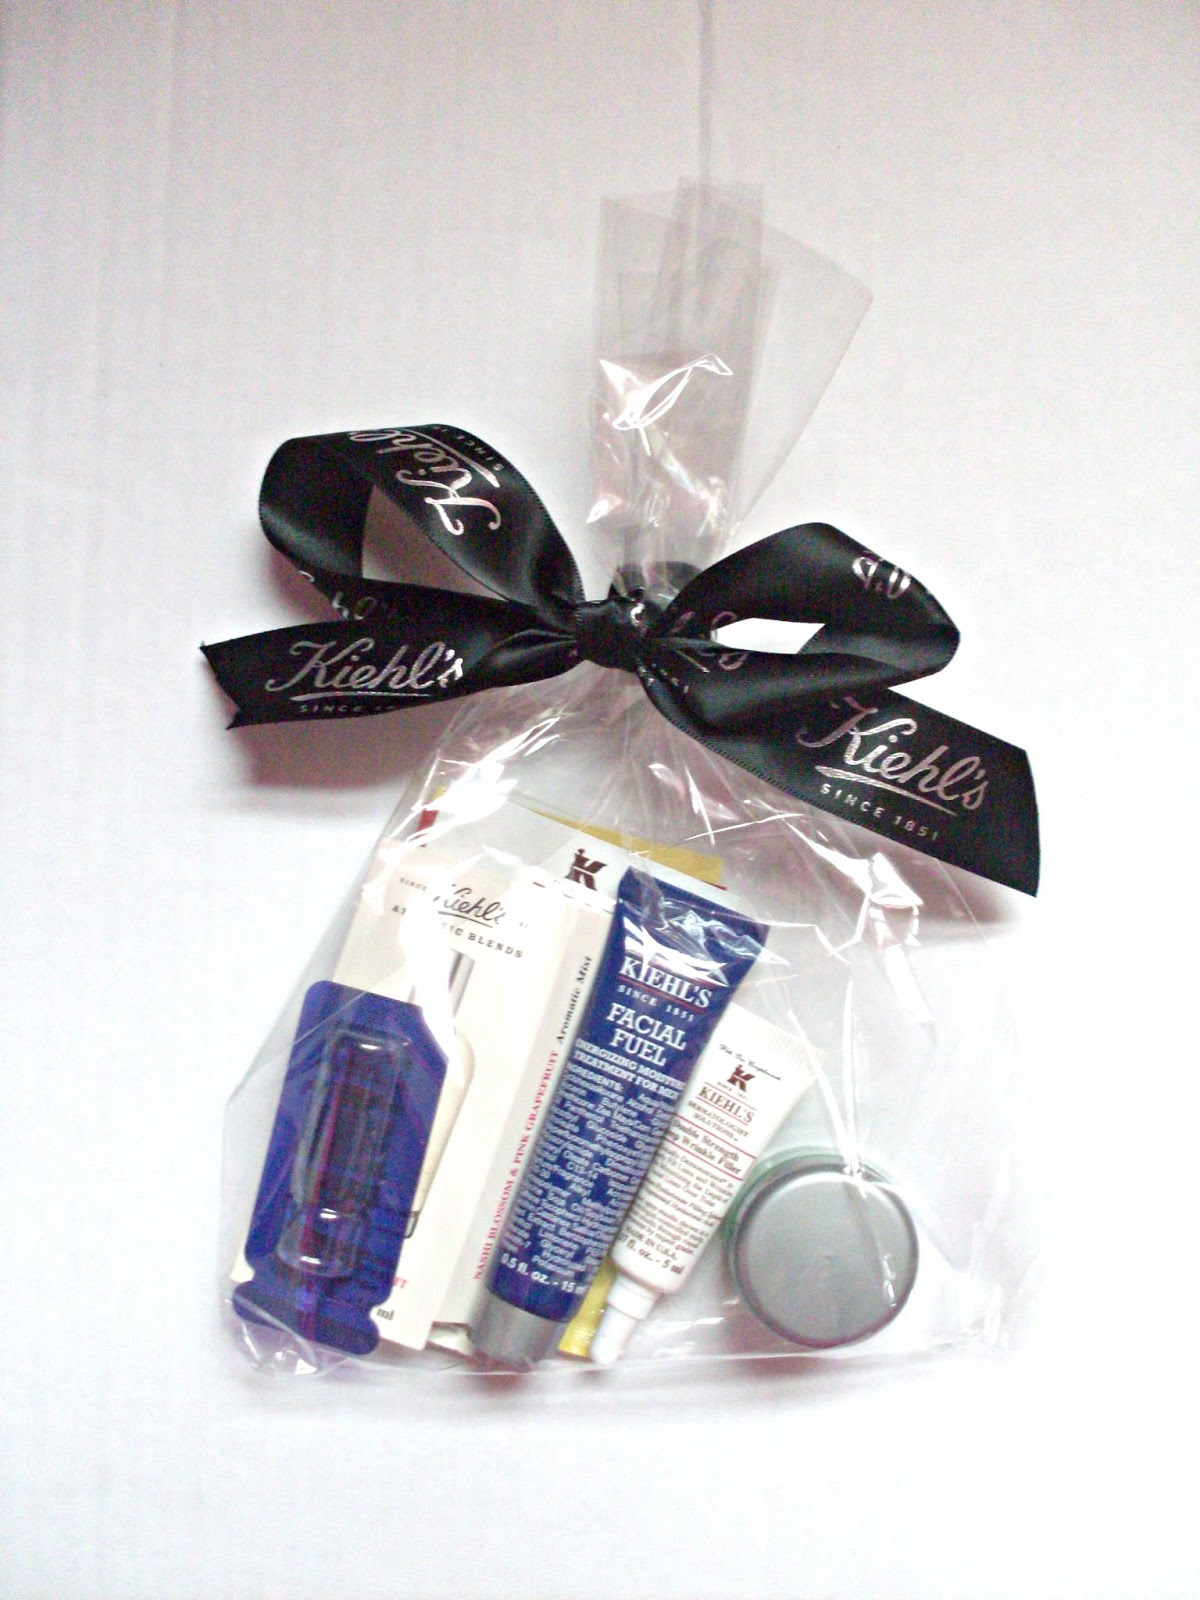 Kiehls goody bag